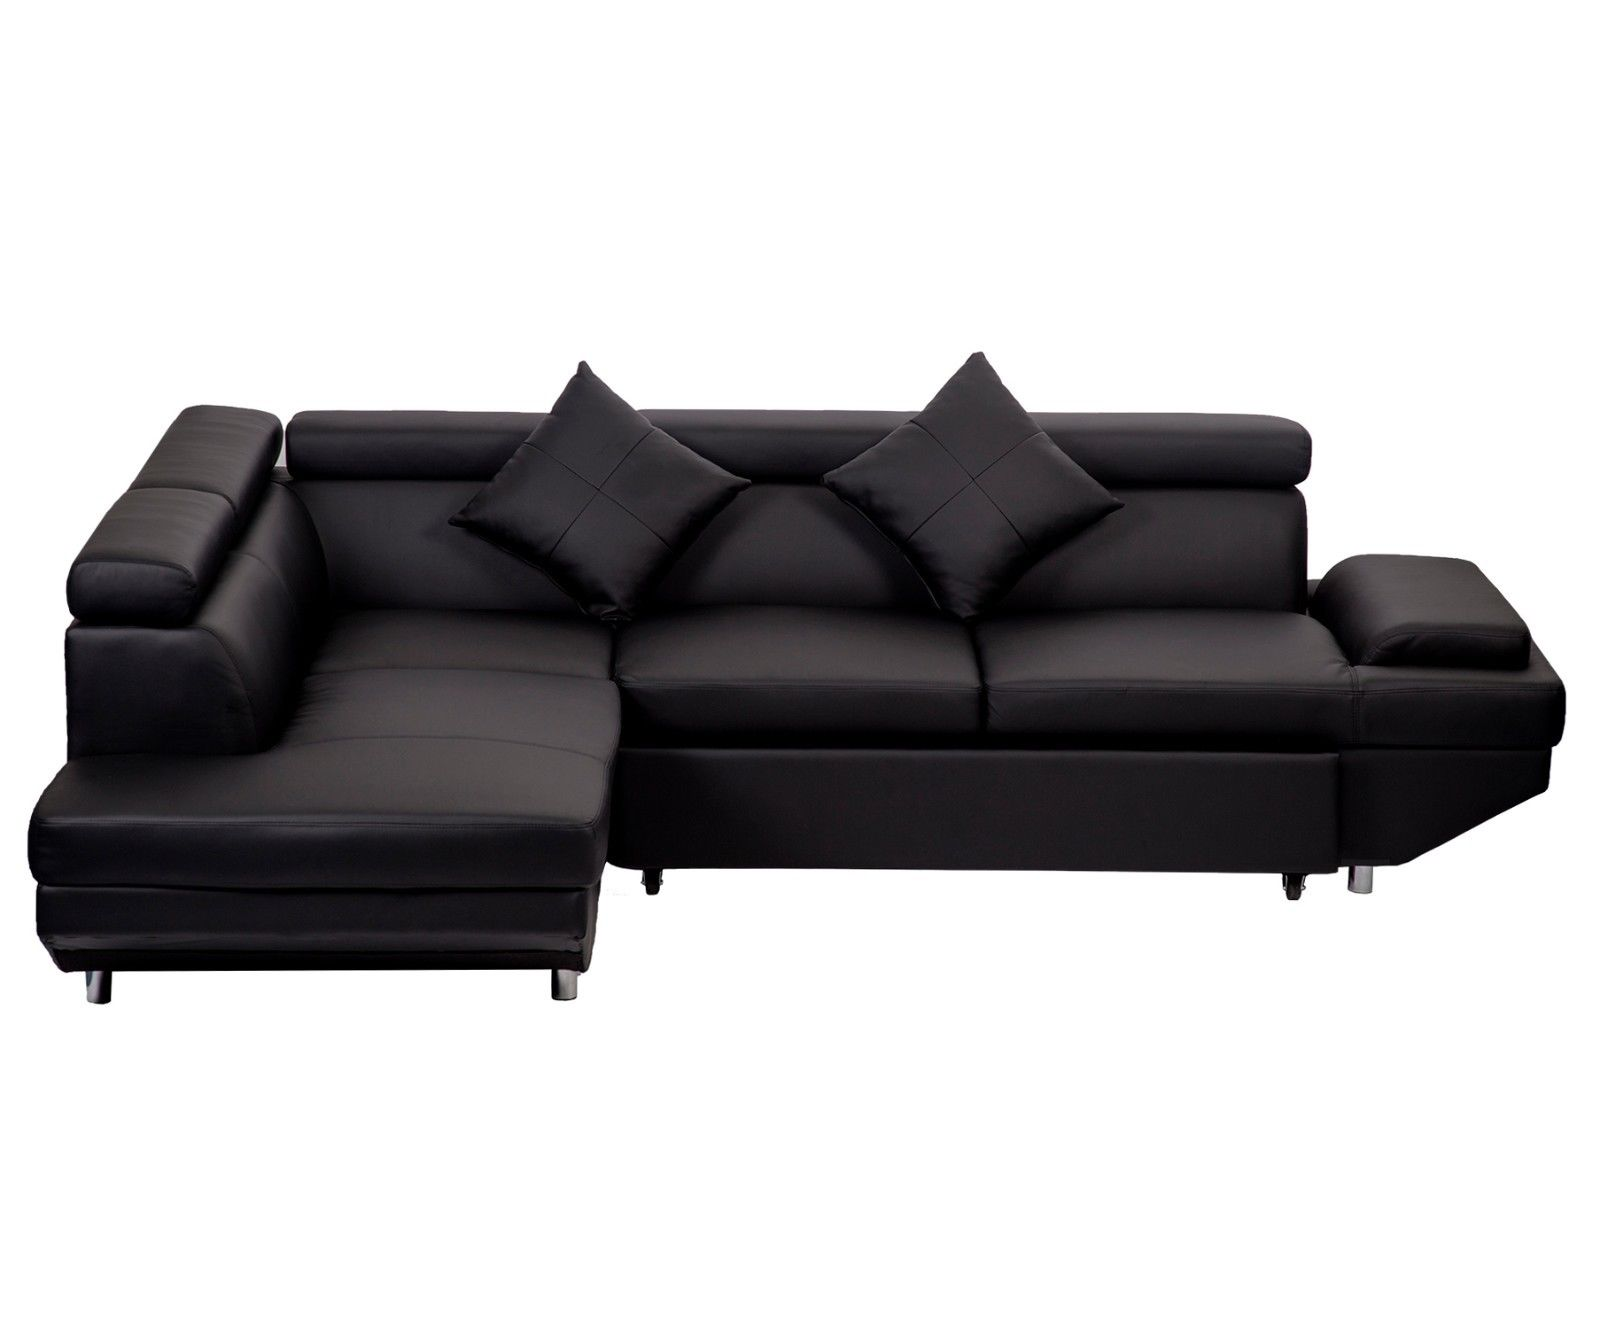 NEW MODERN CONTEMPORARY LEATHER CORNER SECTIONAL SOFA F94BL